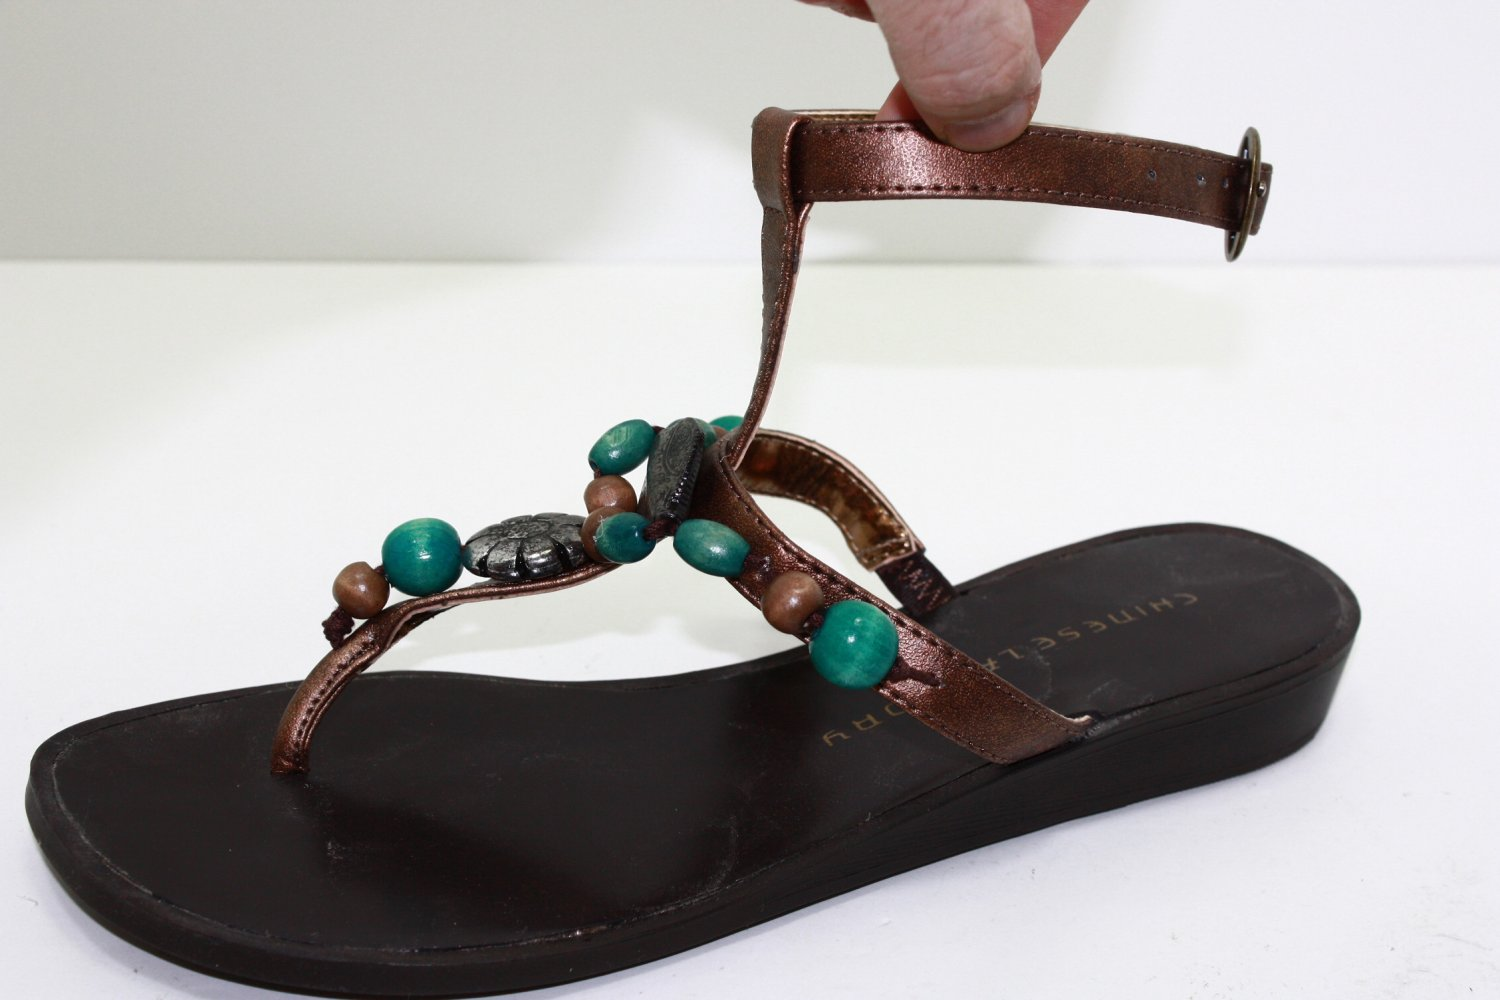 CHINESE LAUNDRY MALINI Sandals RUSTCOPPER Shoes US 6.5